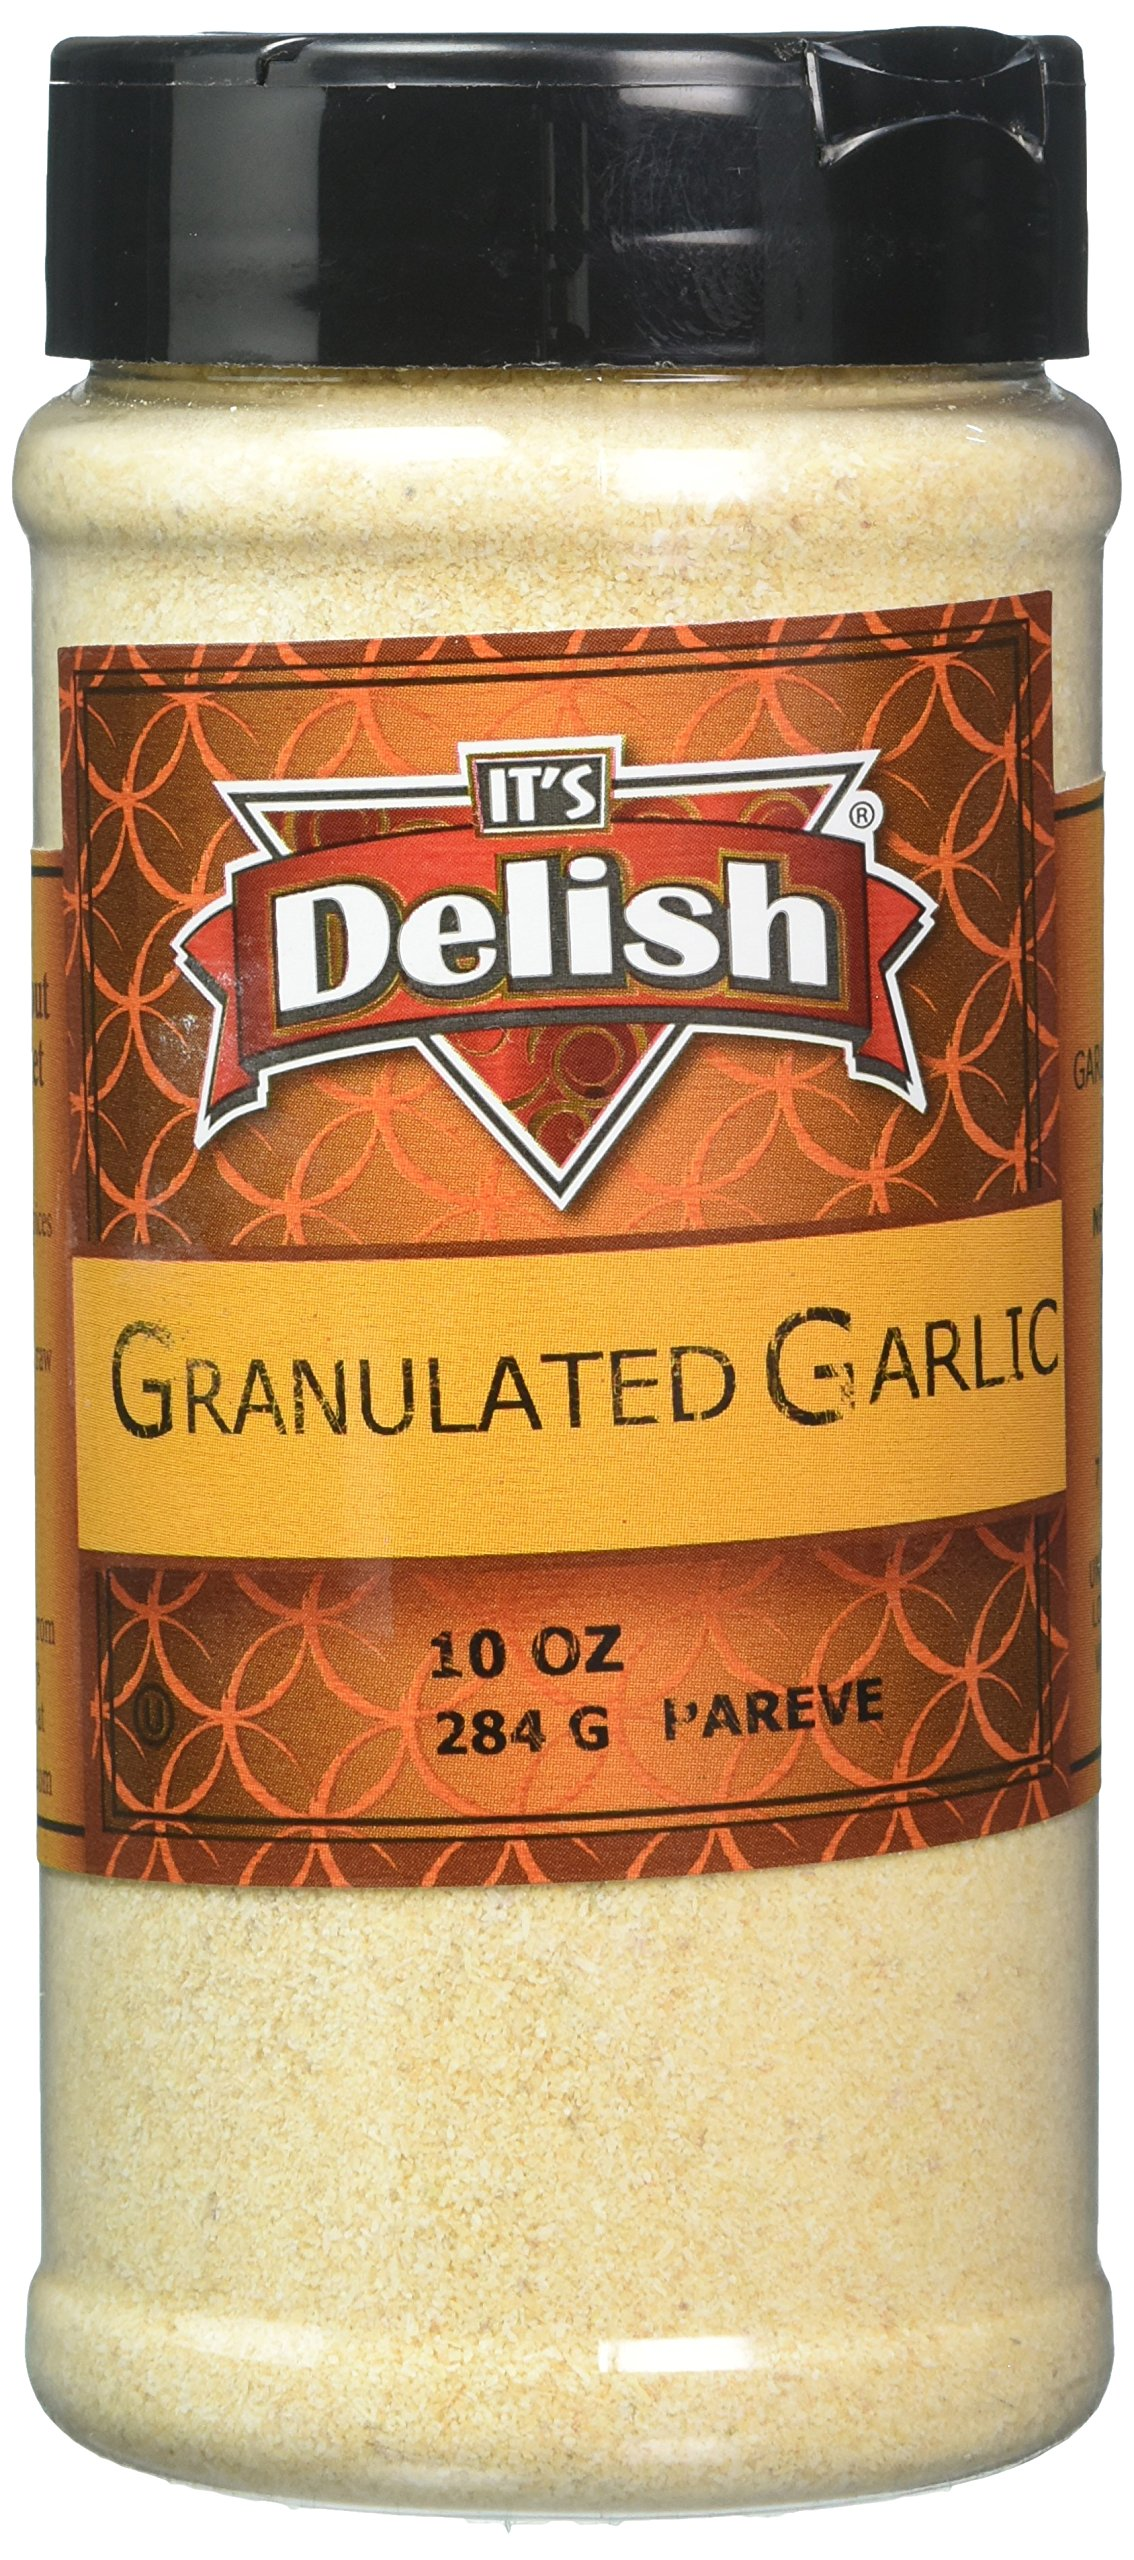 Granulated Garlic by Its Delish (Medium Jar)